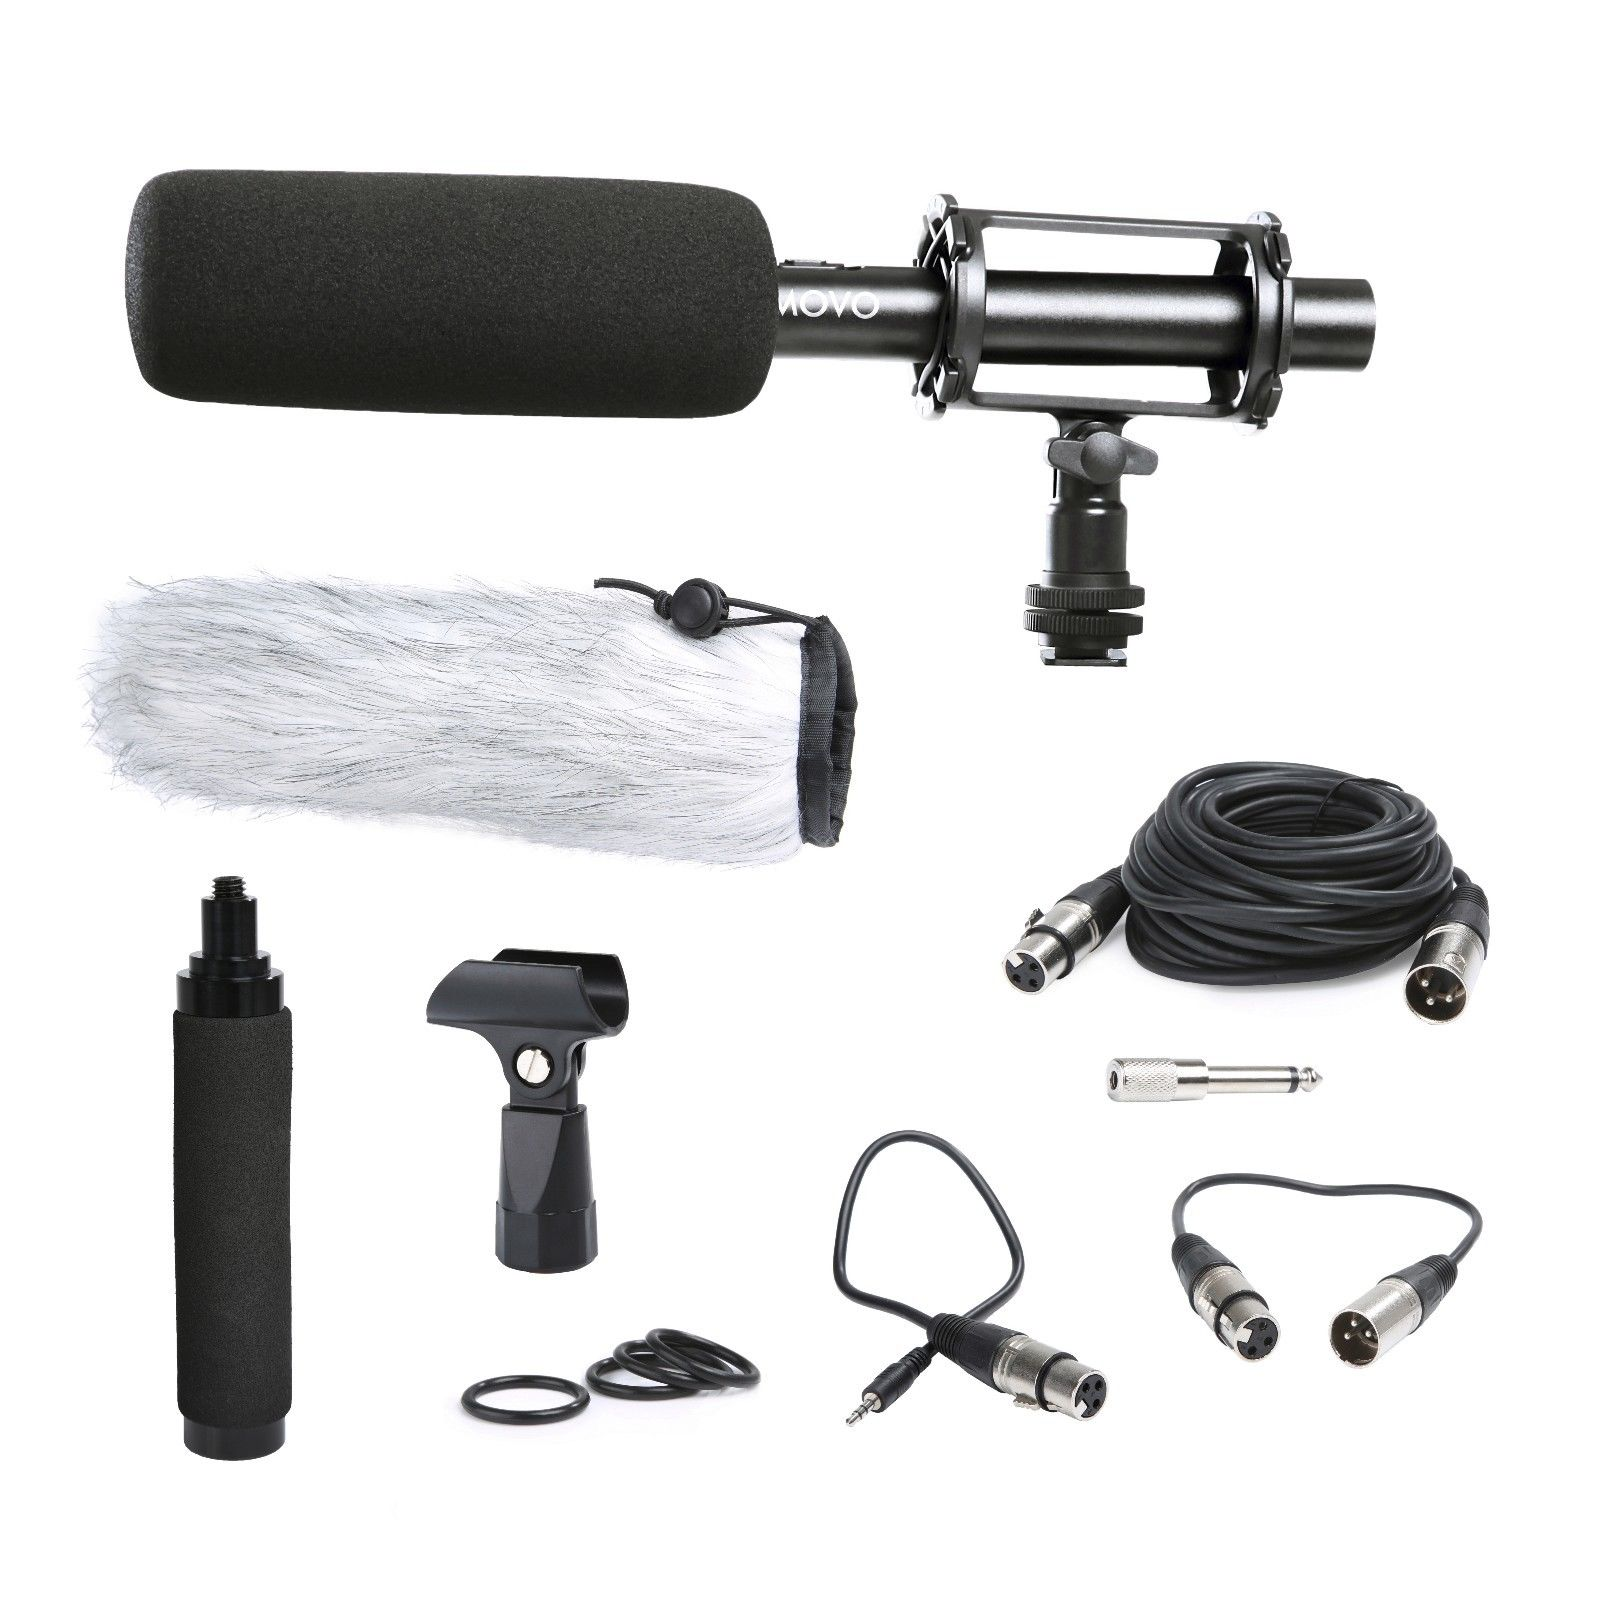 "Movo Photo VXR100L Professional 15"" Supercardioid Condensor Shotgun Video Microphone Kit for DSLR Cameras and Camcorders"